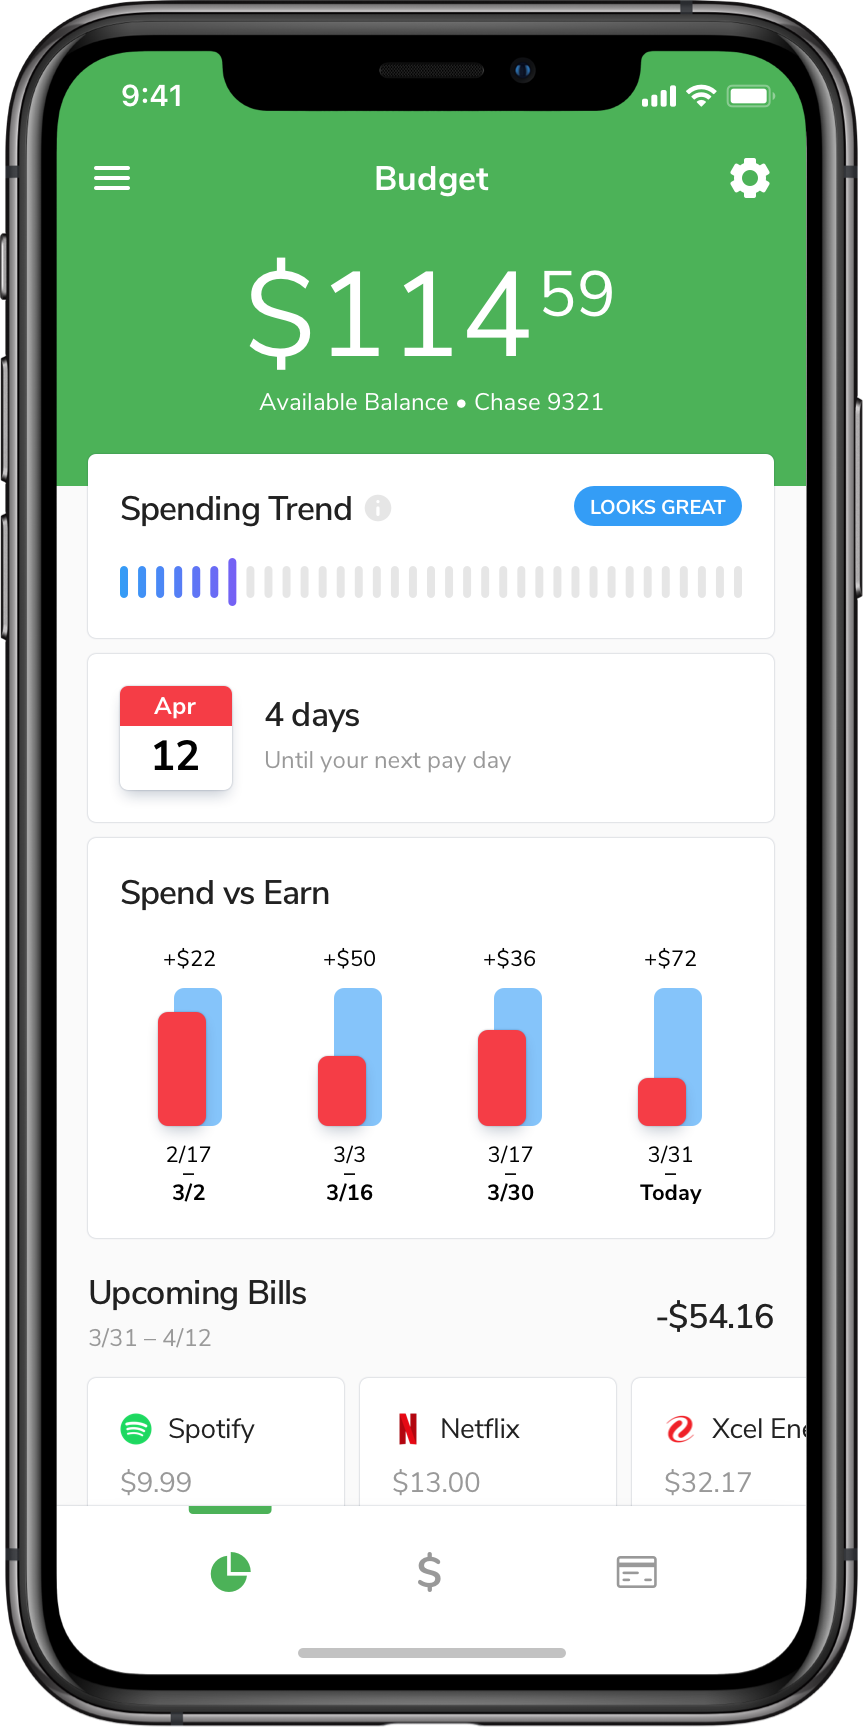 Get an overview of upcoming account, upcoming expenses, and spending